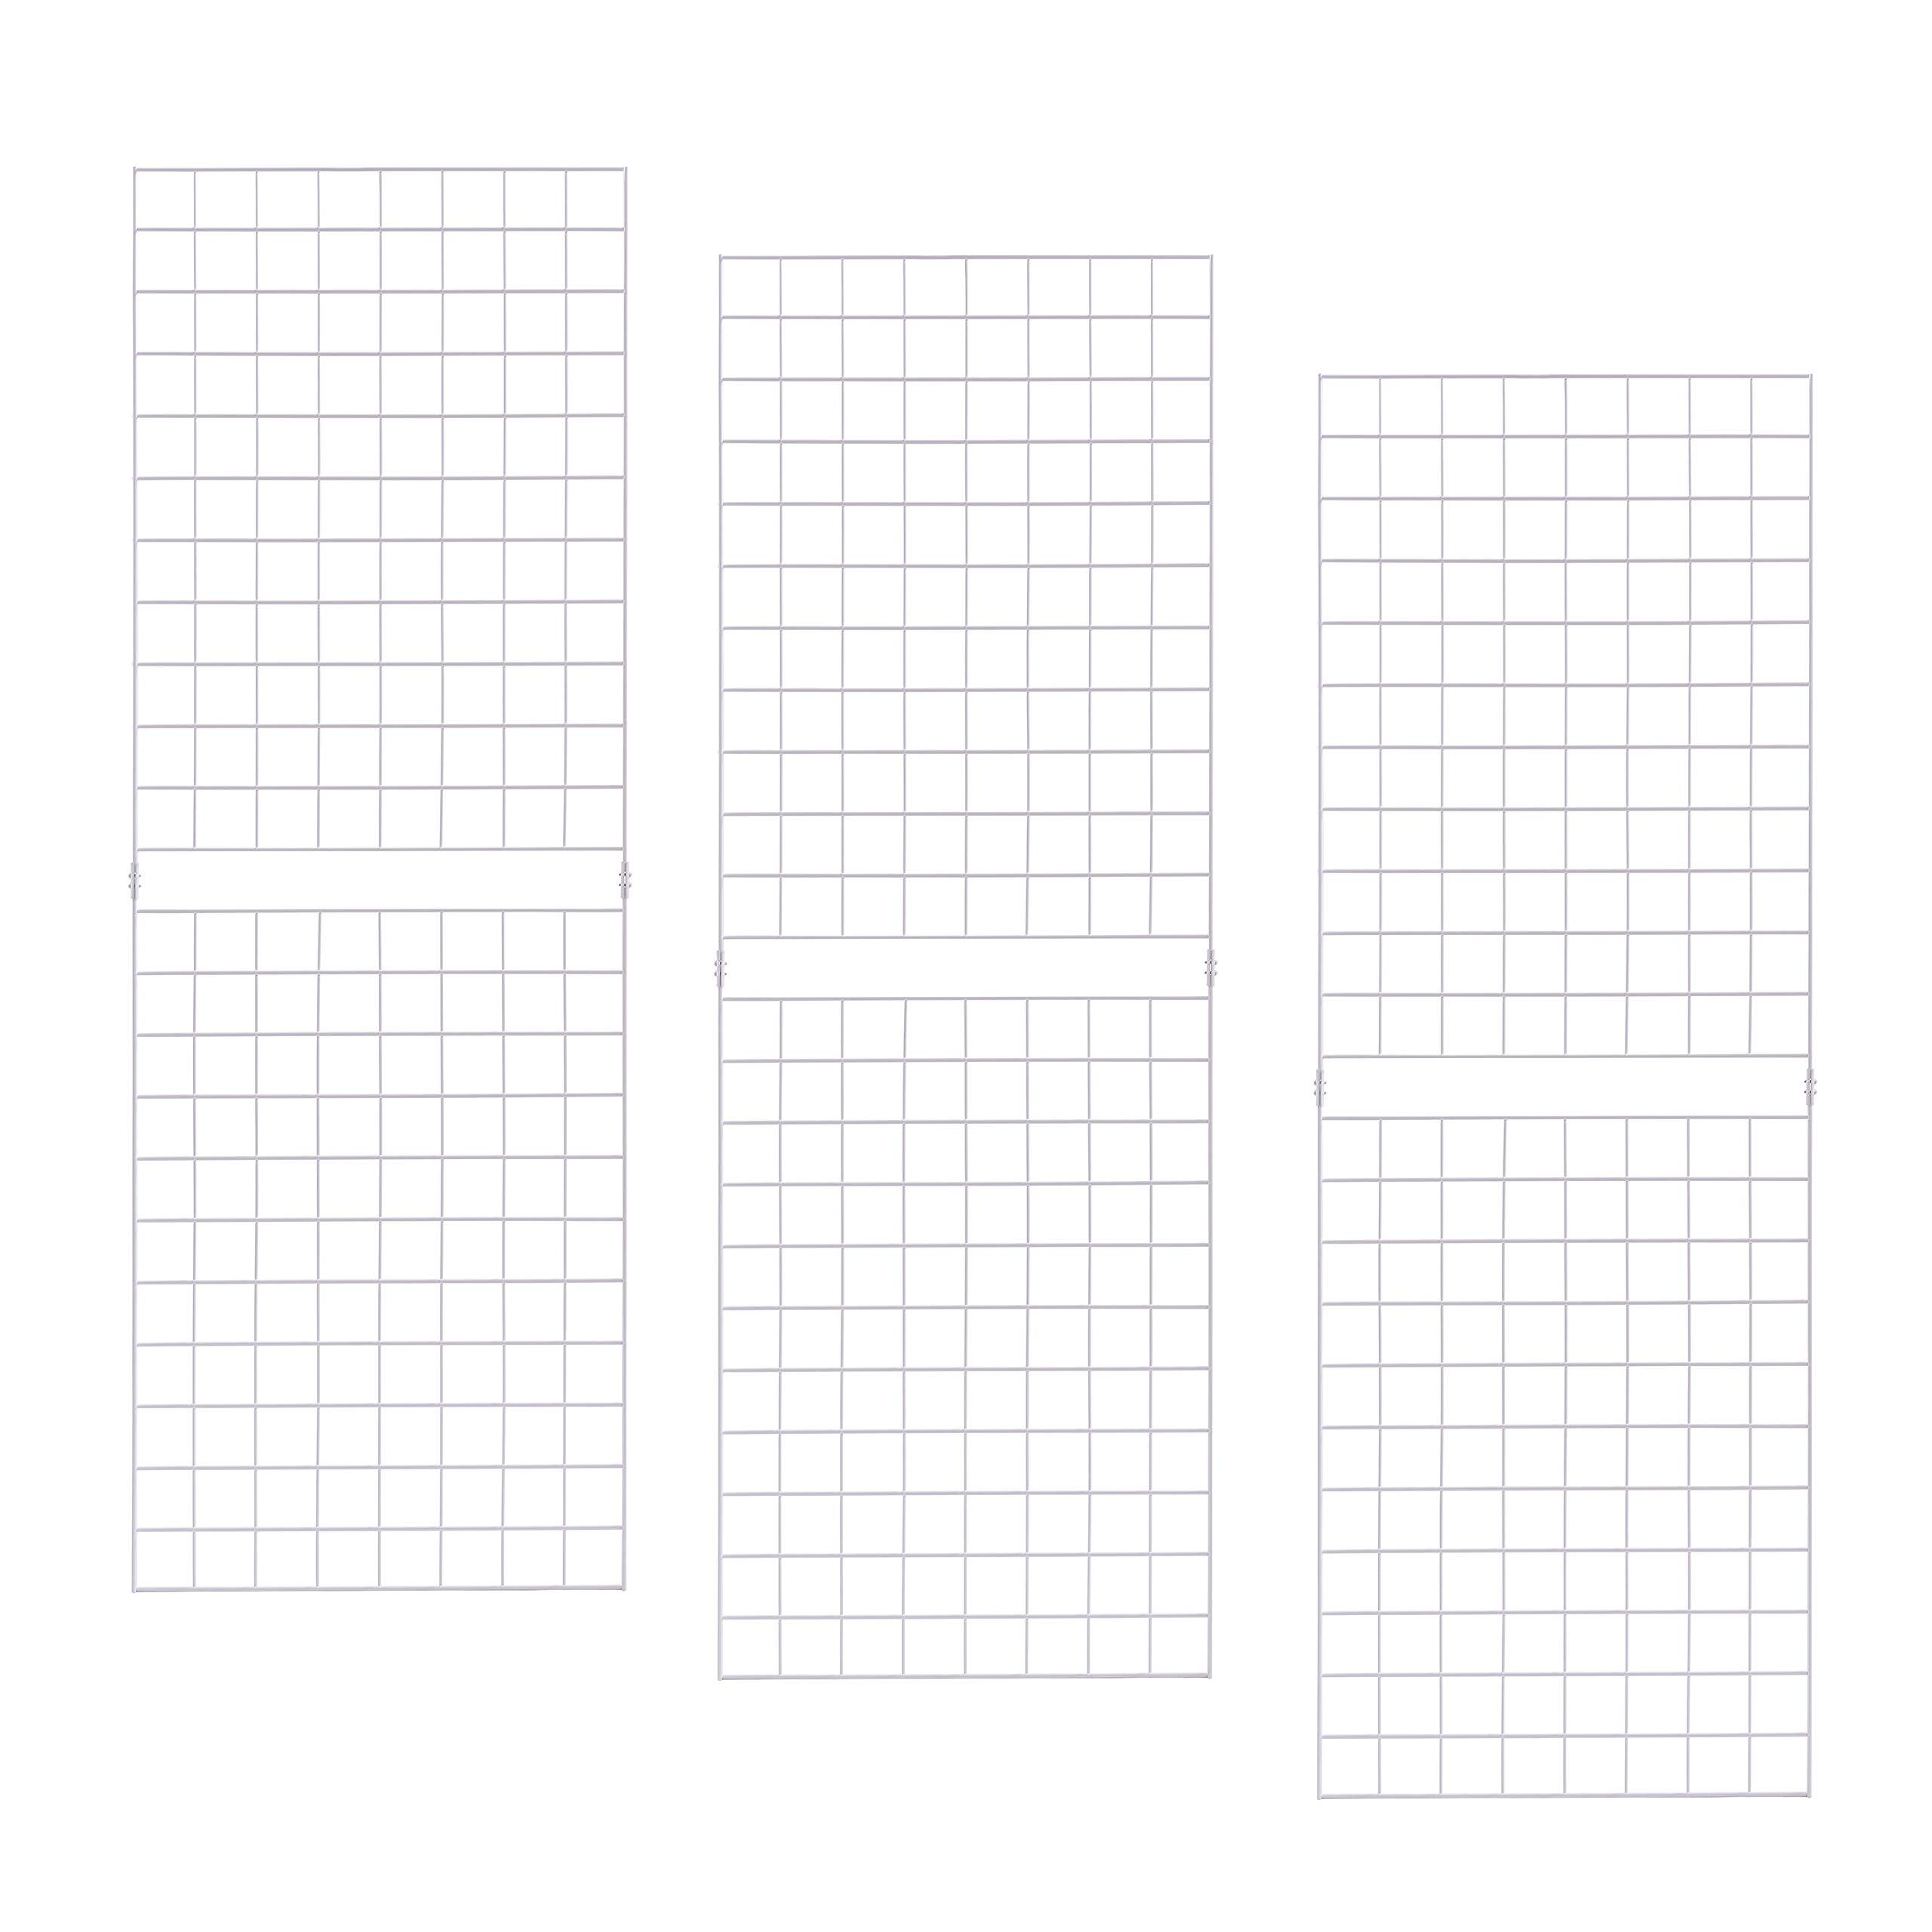 Grid Panels - Econoco Durable Grid Shelves - Portable Fixtures for Art, Retail Display, or Home Storage- 2 ft x 6 ft - Pack of 3 (White)